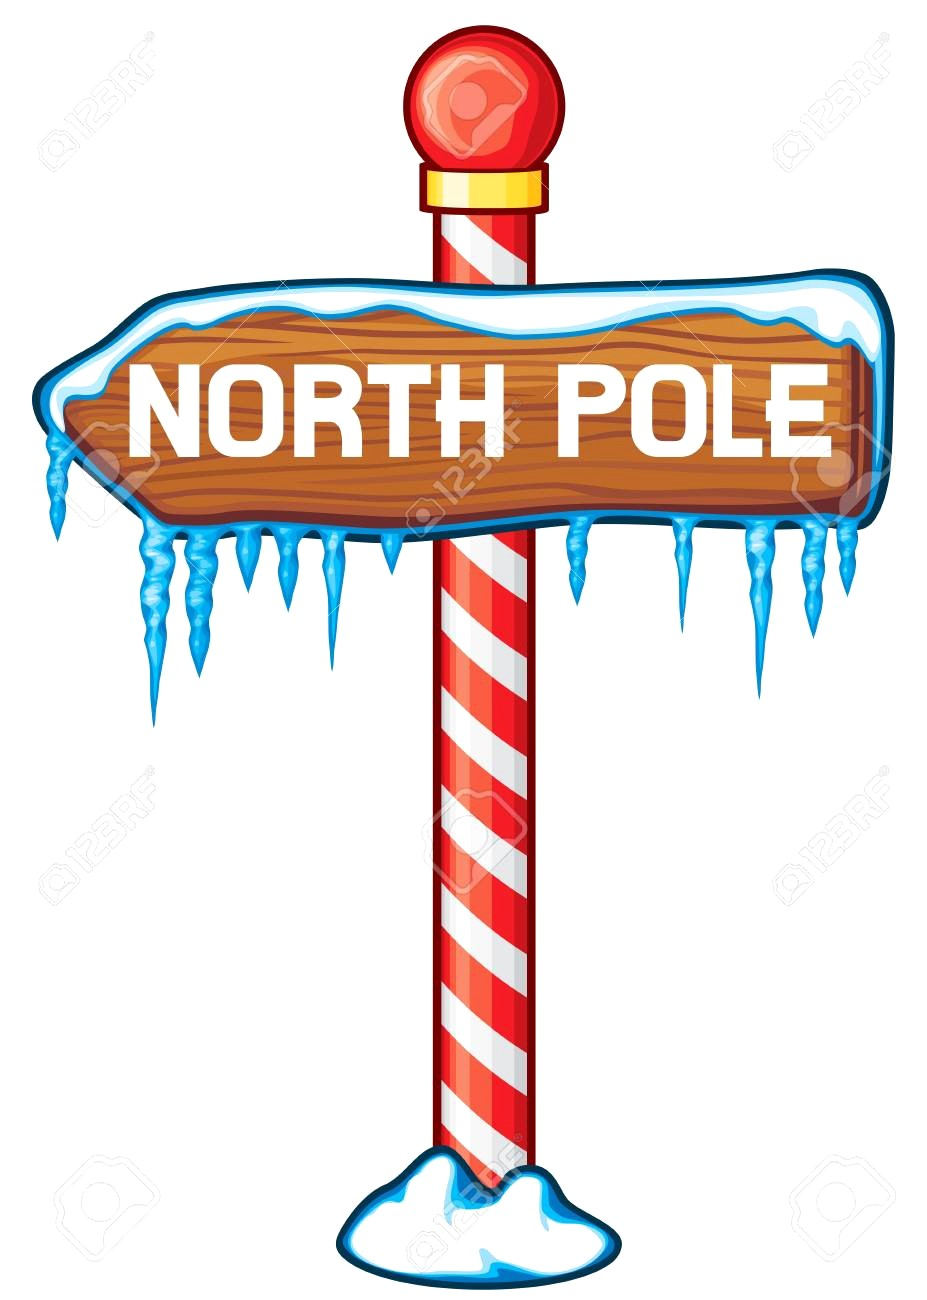 North pole sign clipart 1 » Clipart Station.